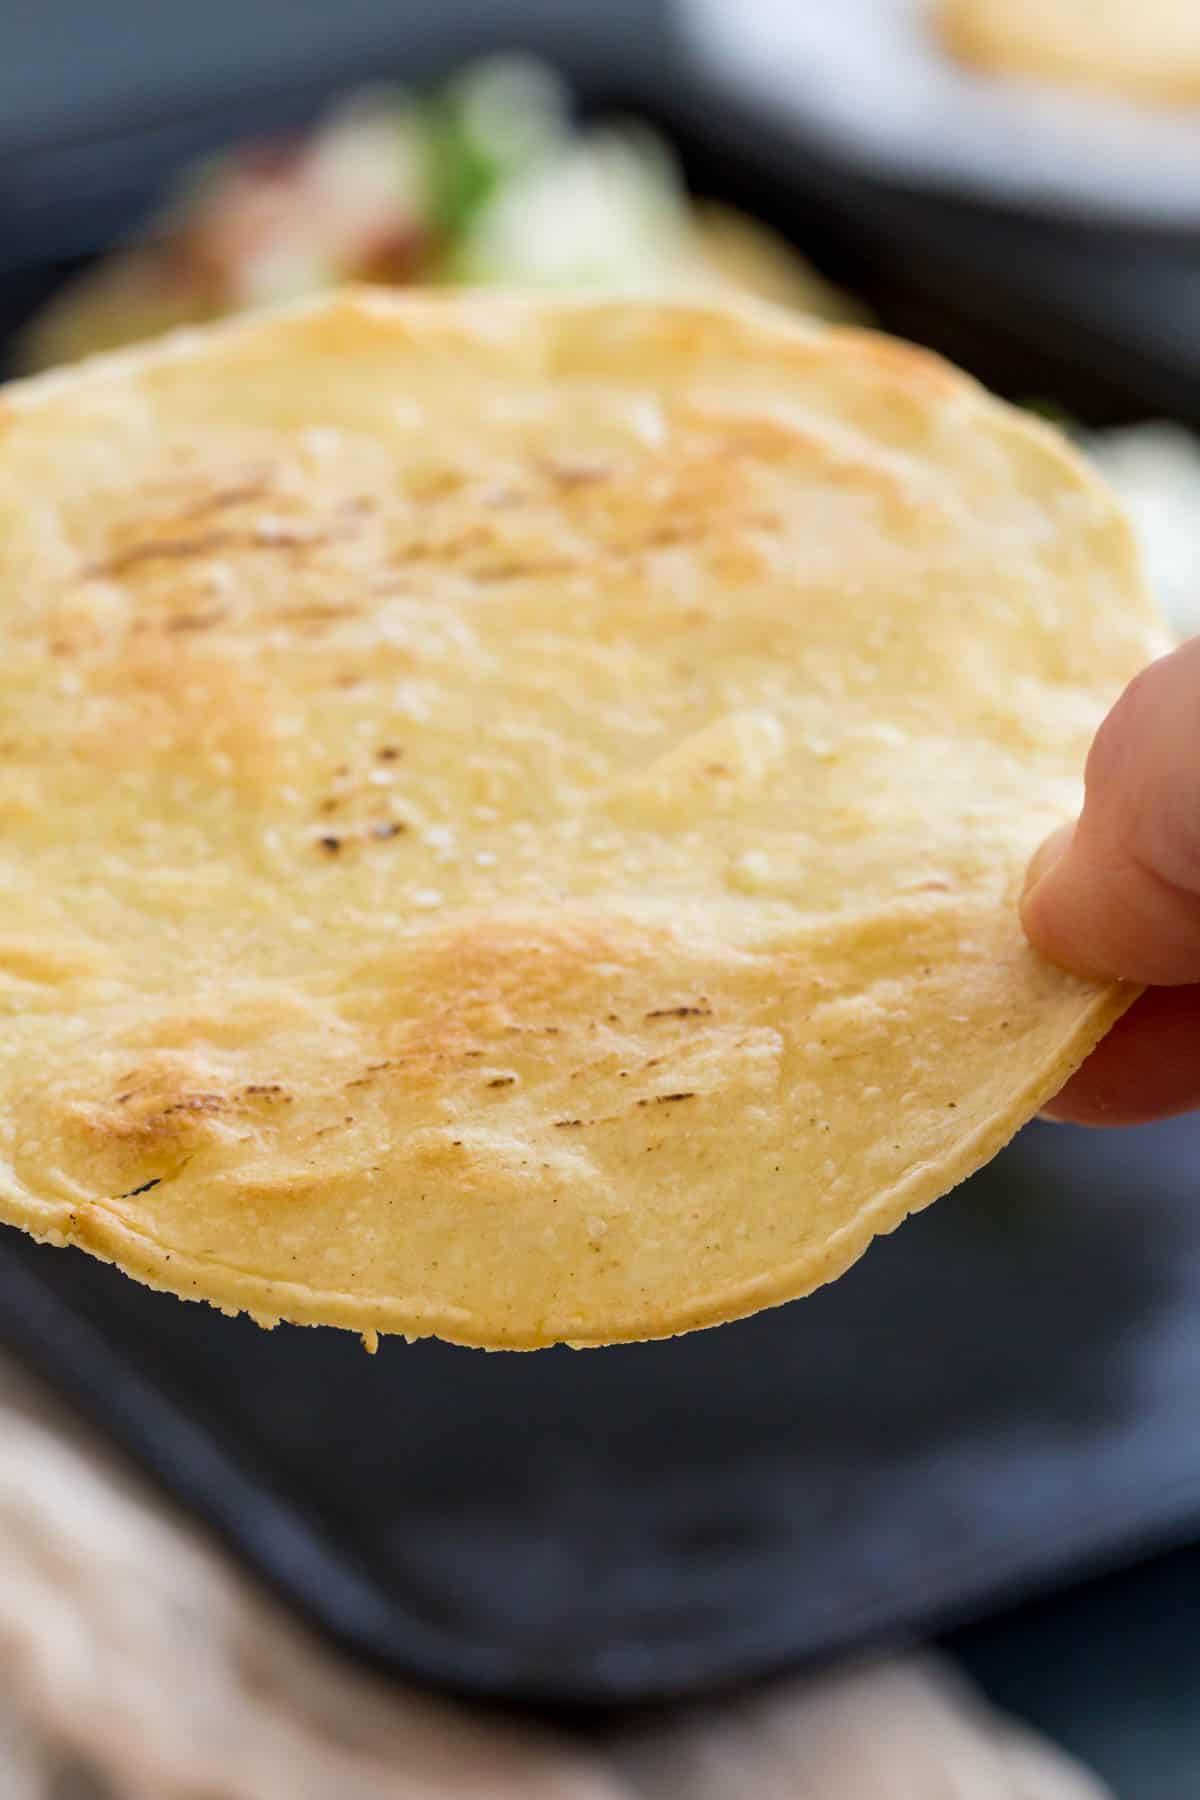 picking up a tostada shell off of a baking pan